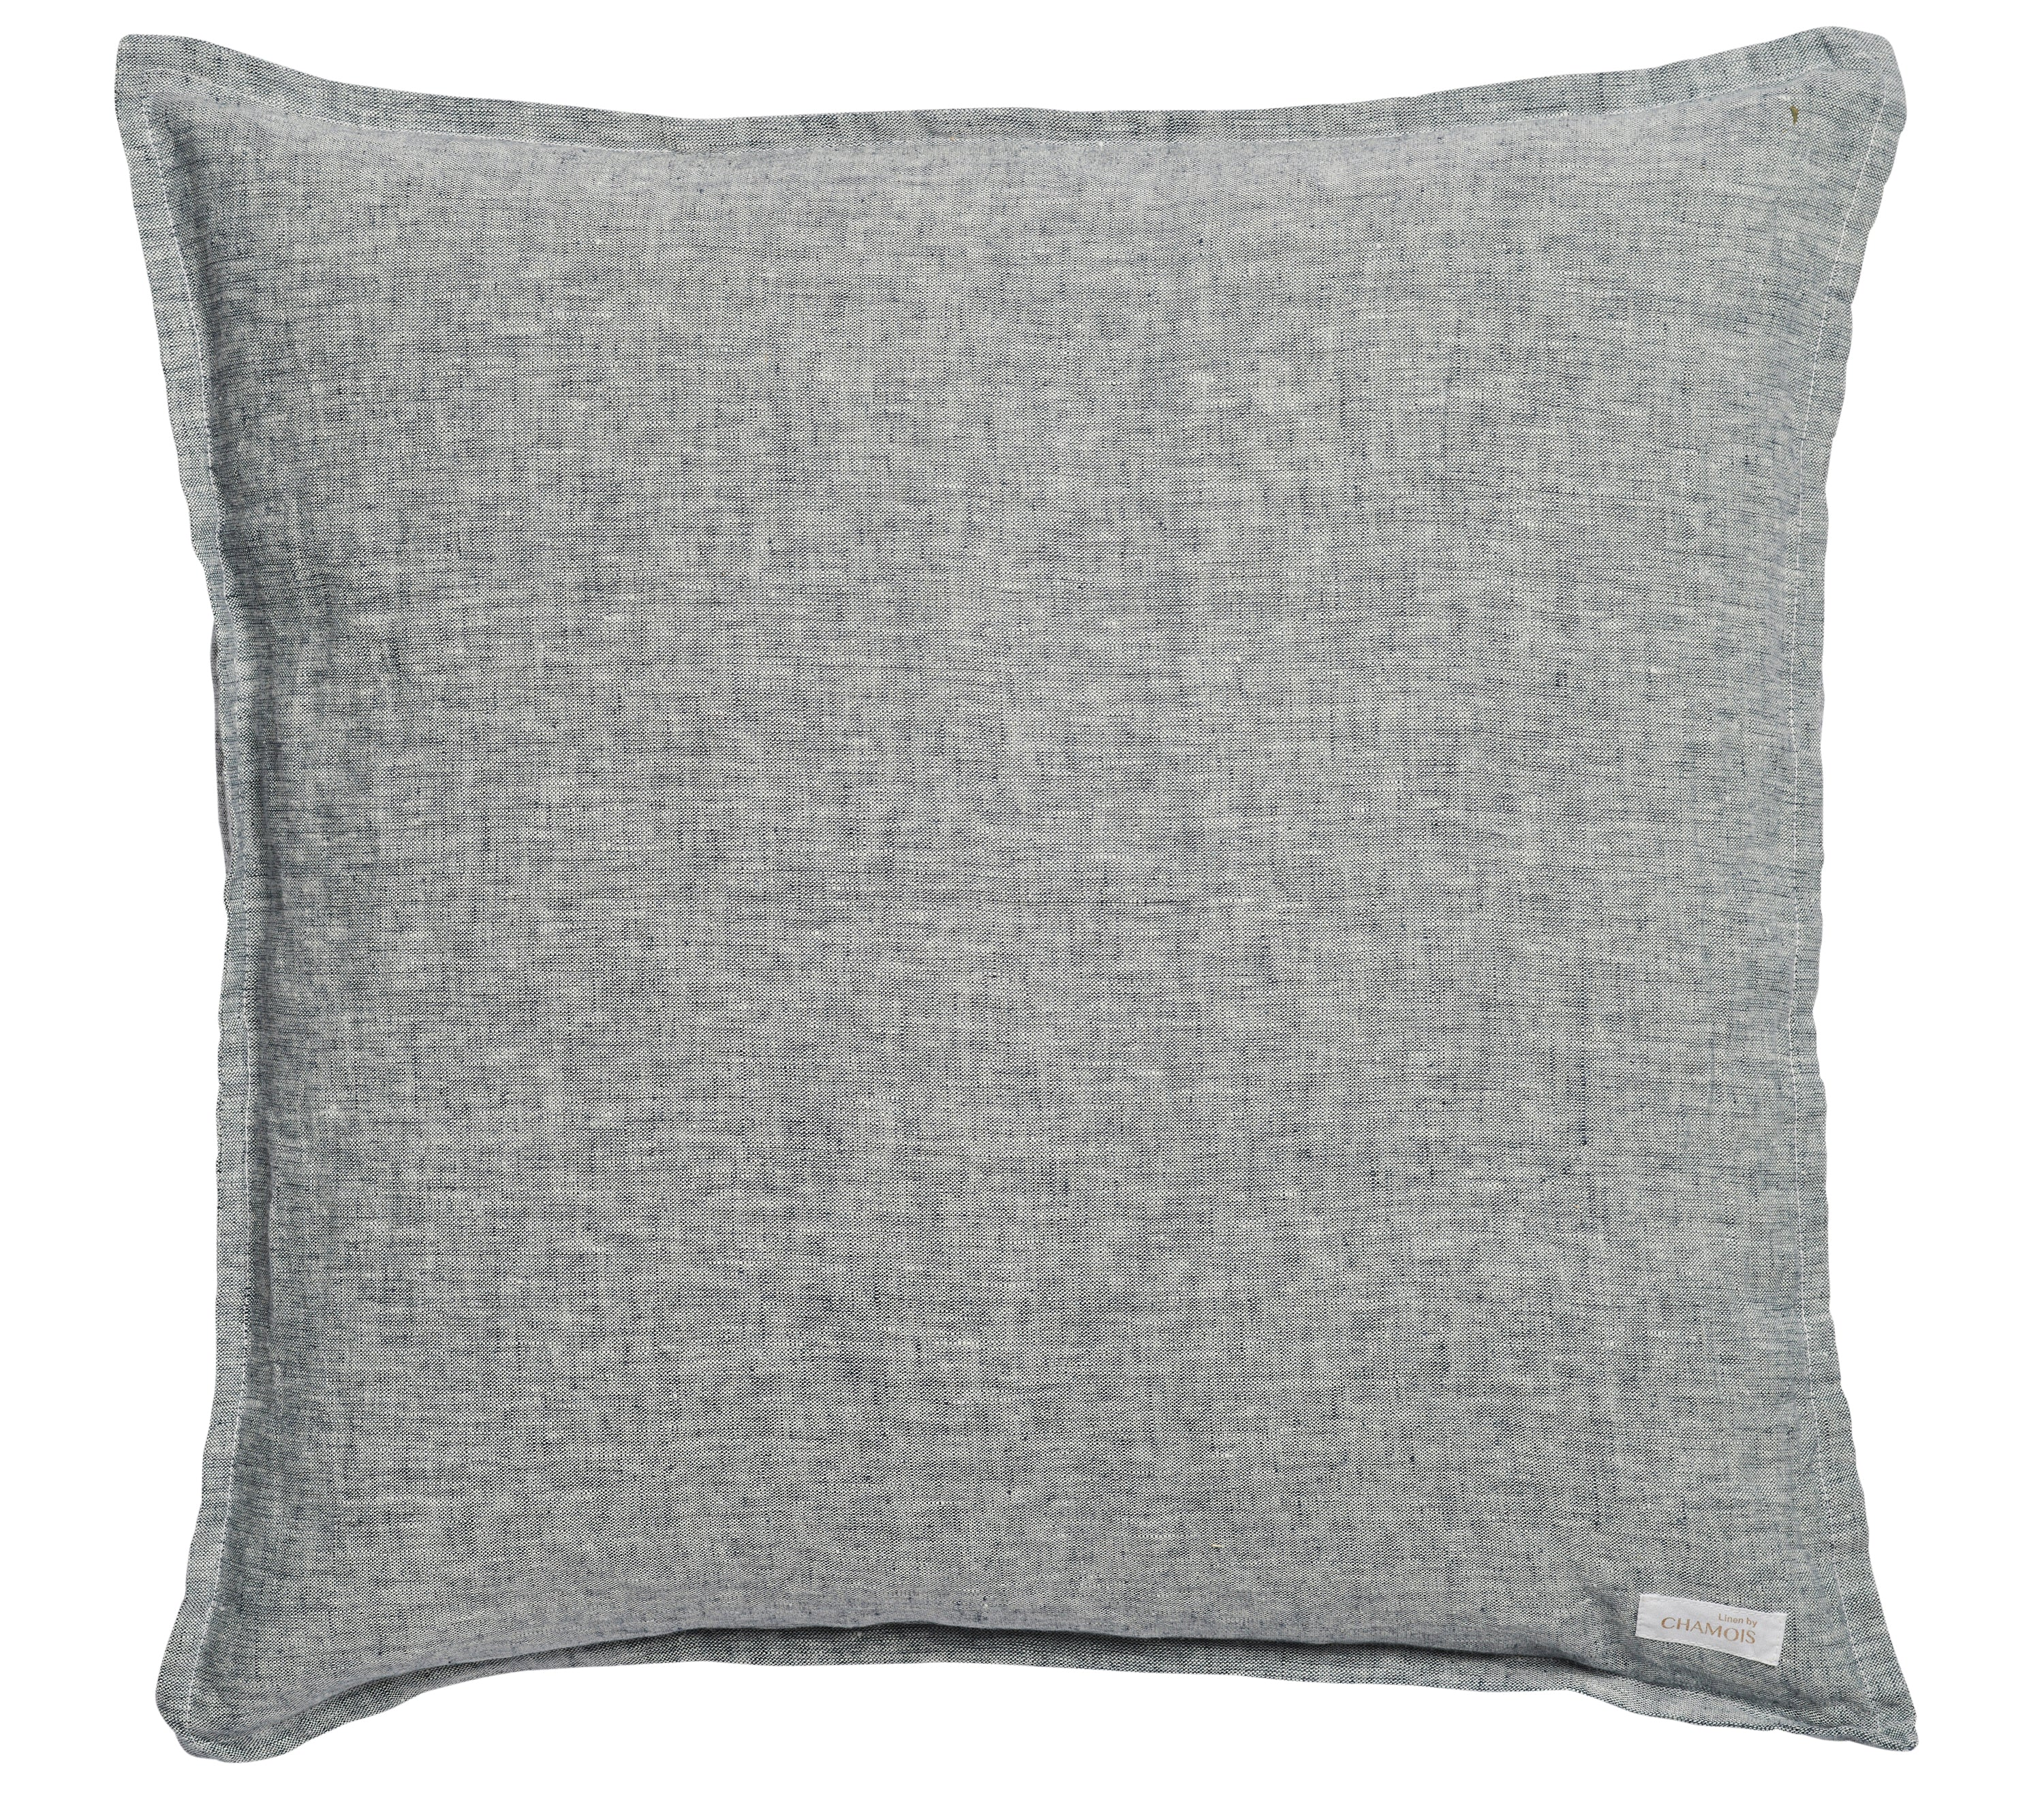 Cushion in Navy Blue Chambray Linen